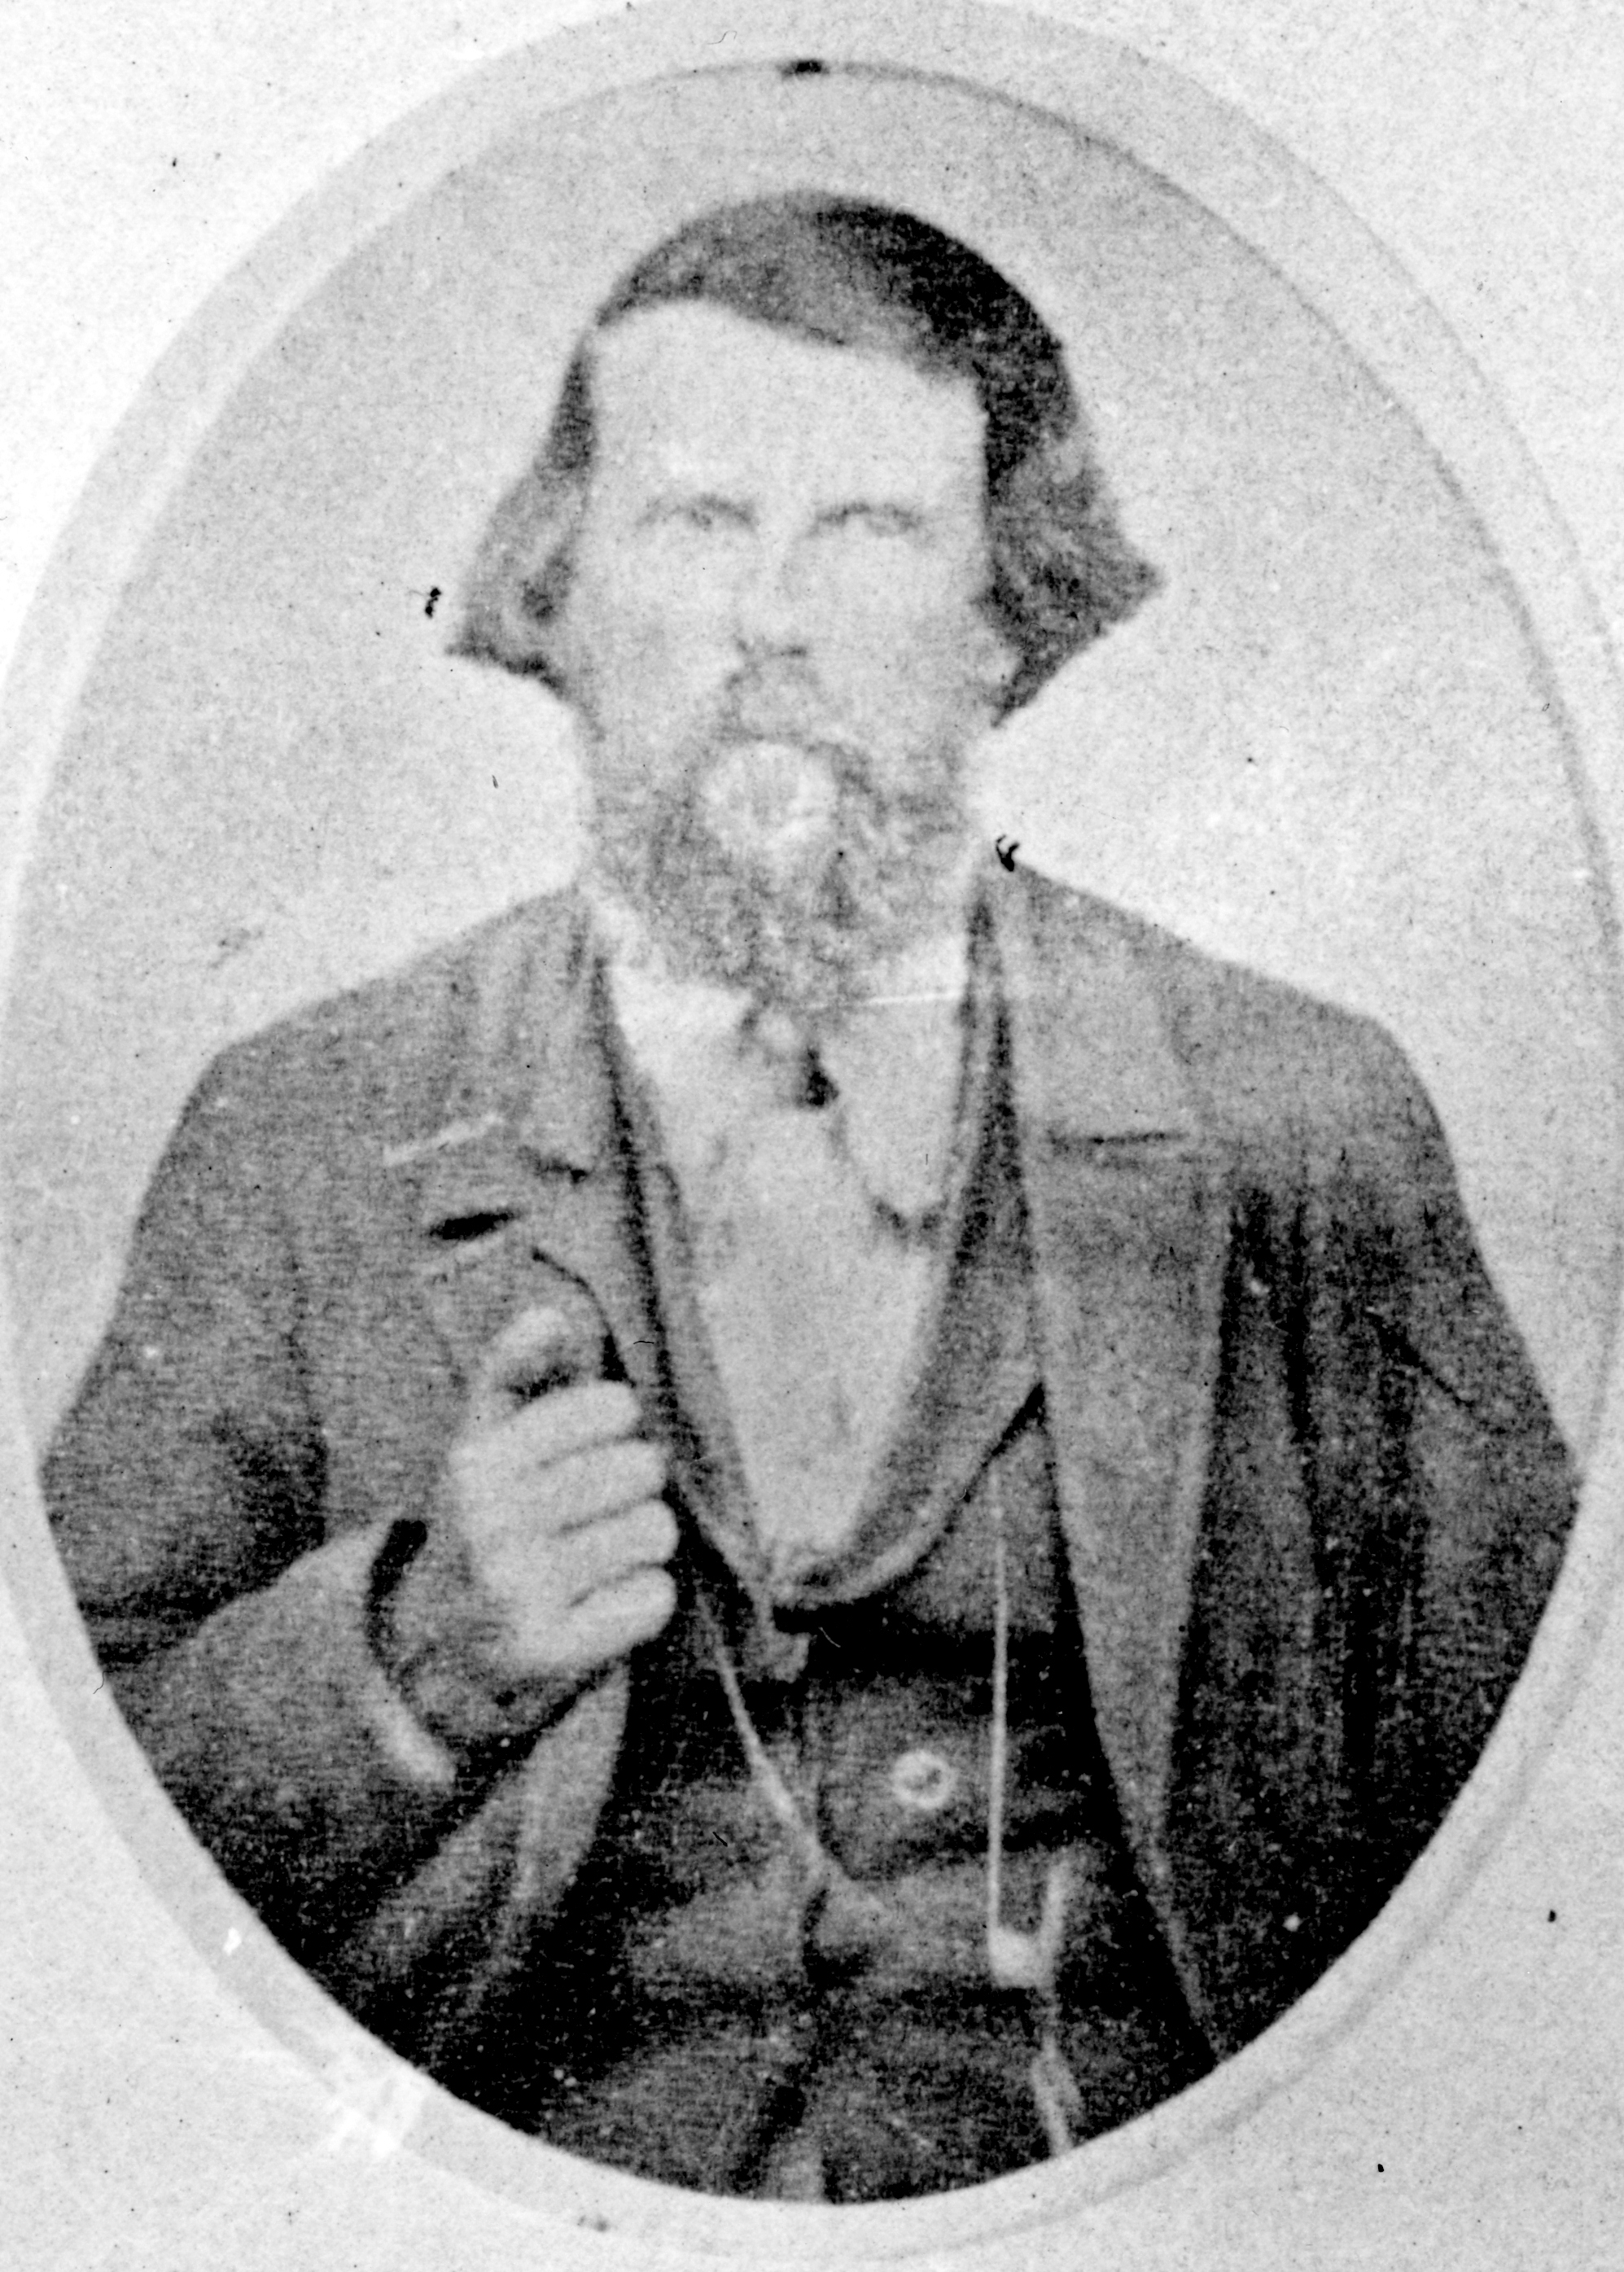 Samuel D. White in the 1860s